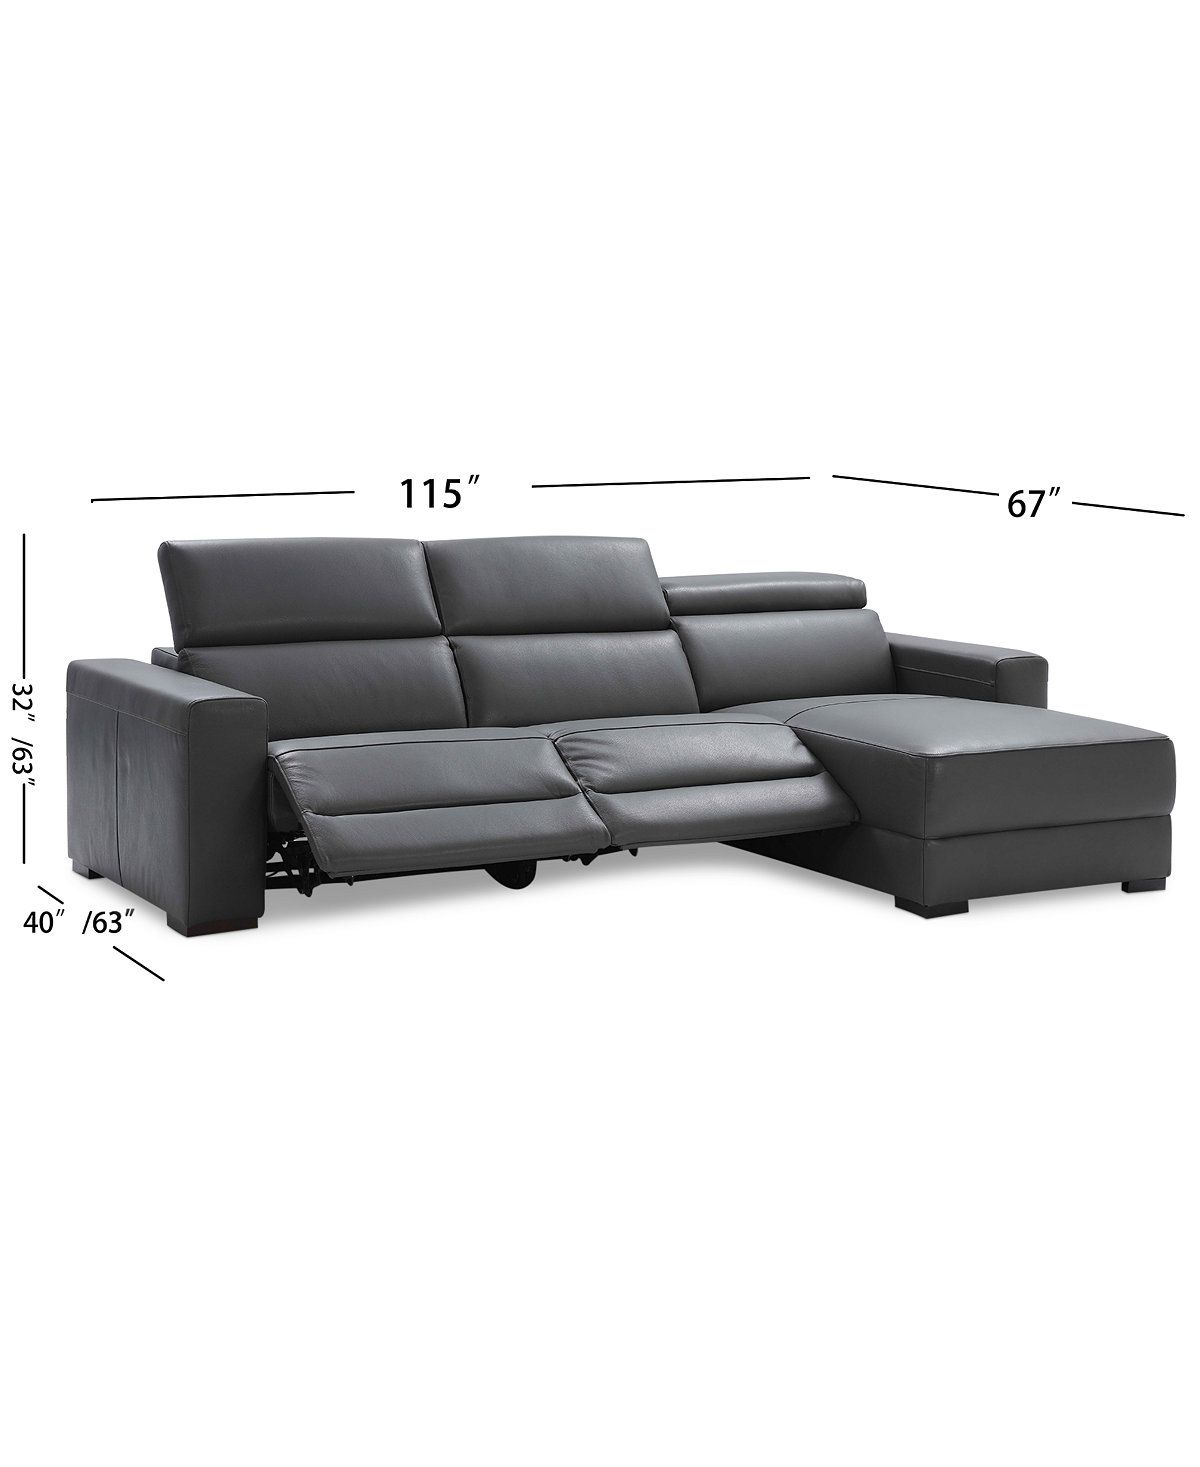 Sofa Relax Con Usb Nevio 3 Pc Leather Sectional Sofa With Chaise 2 Power Recliners